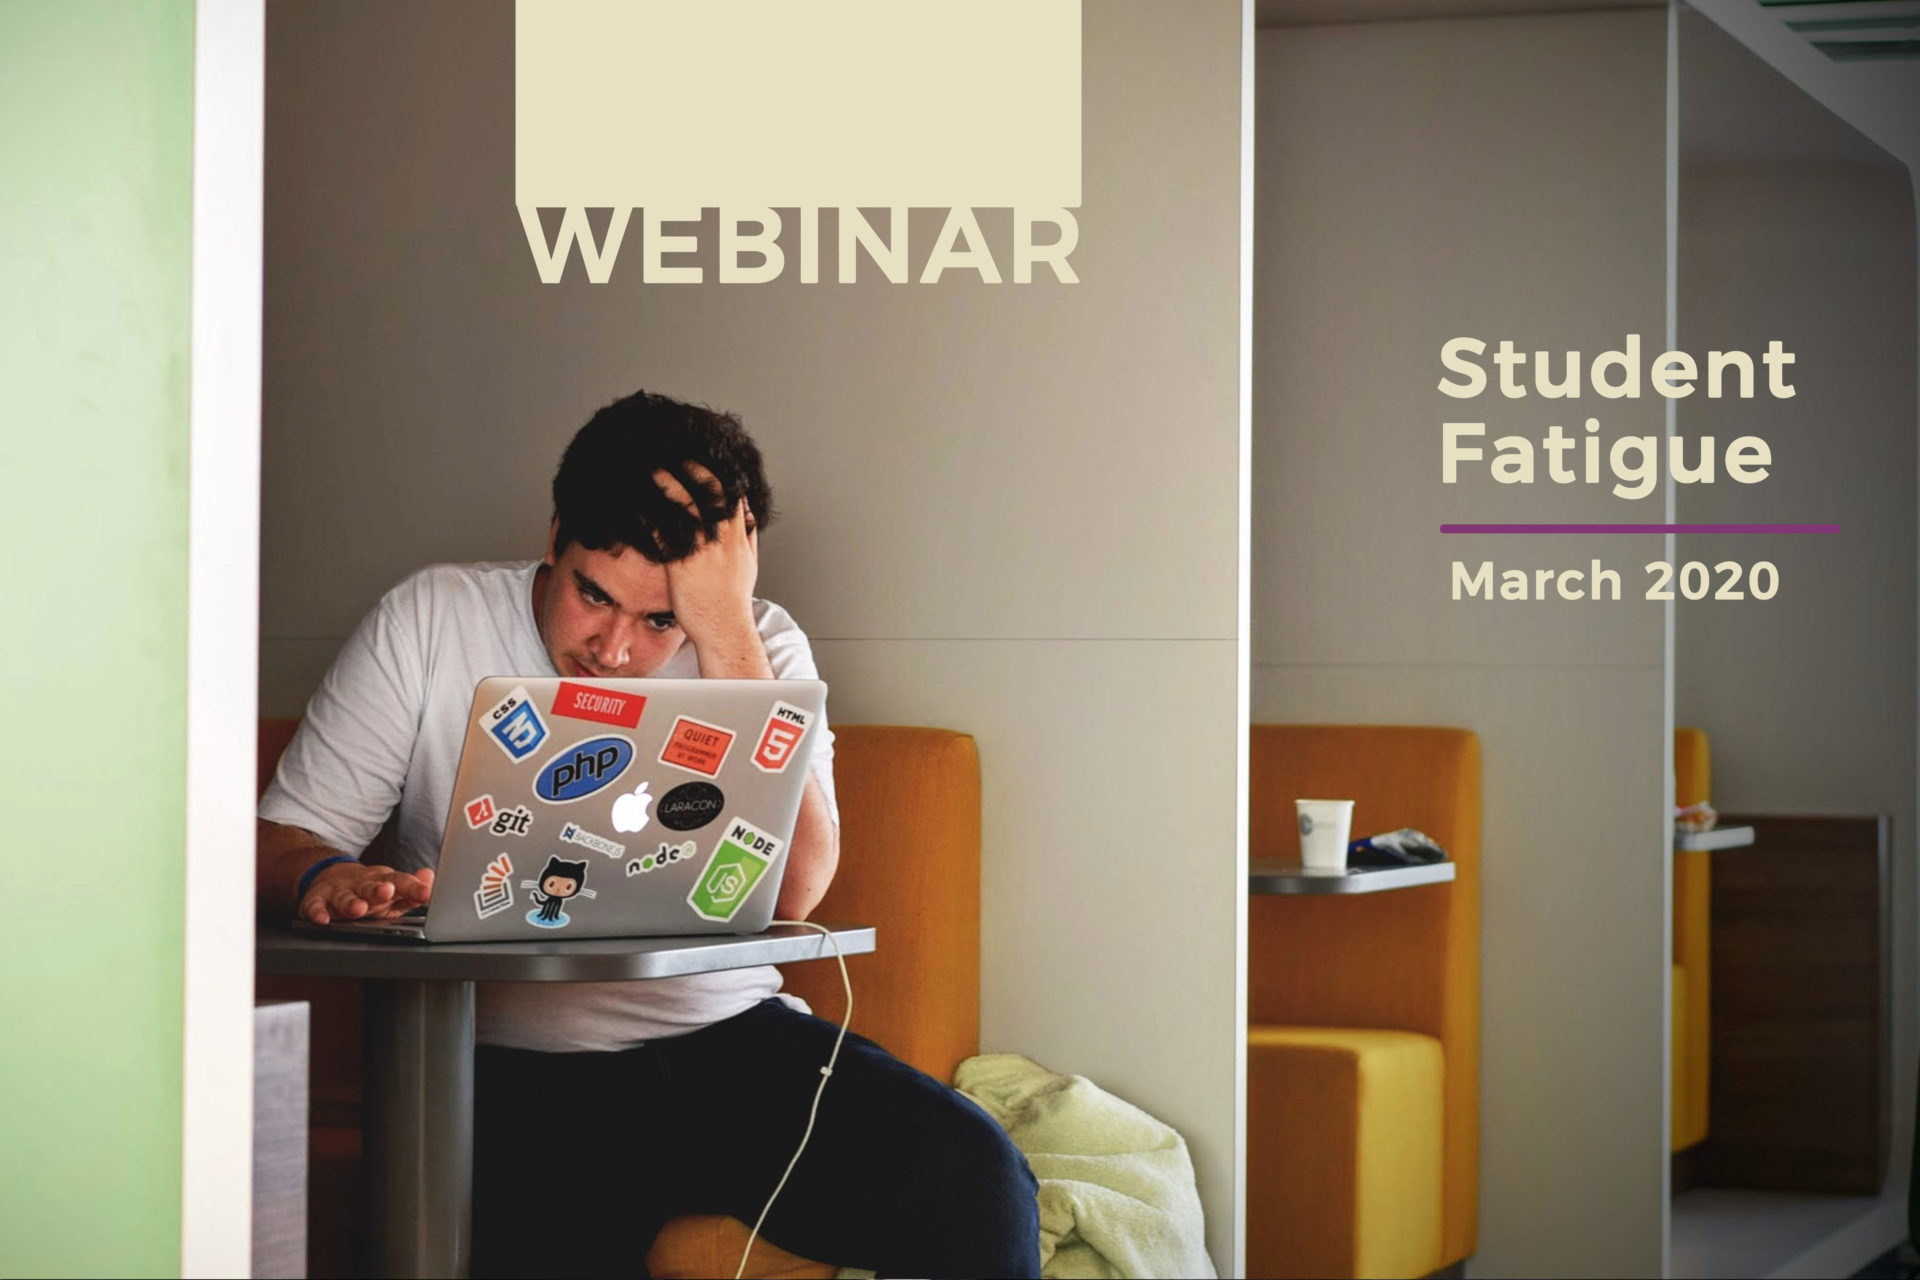 https://ace-bc.ca/app/uploads/2020/05/student_fatigue_webinar_ACE-BC_.jpg